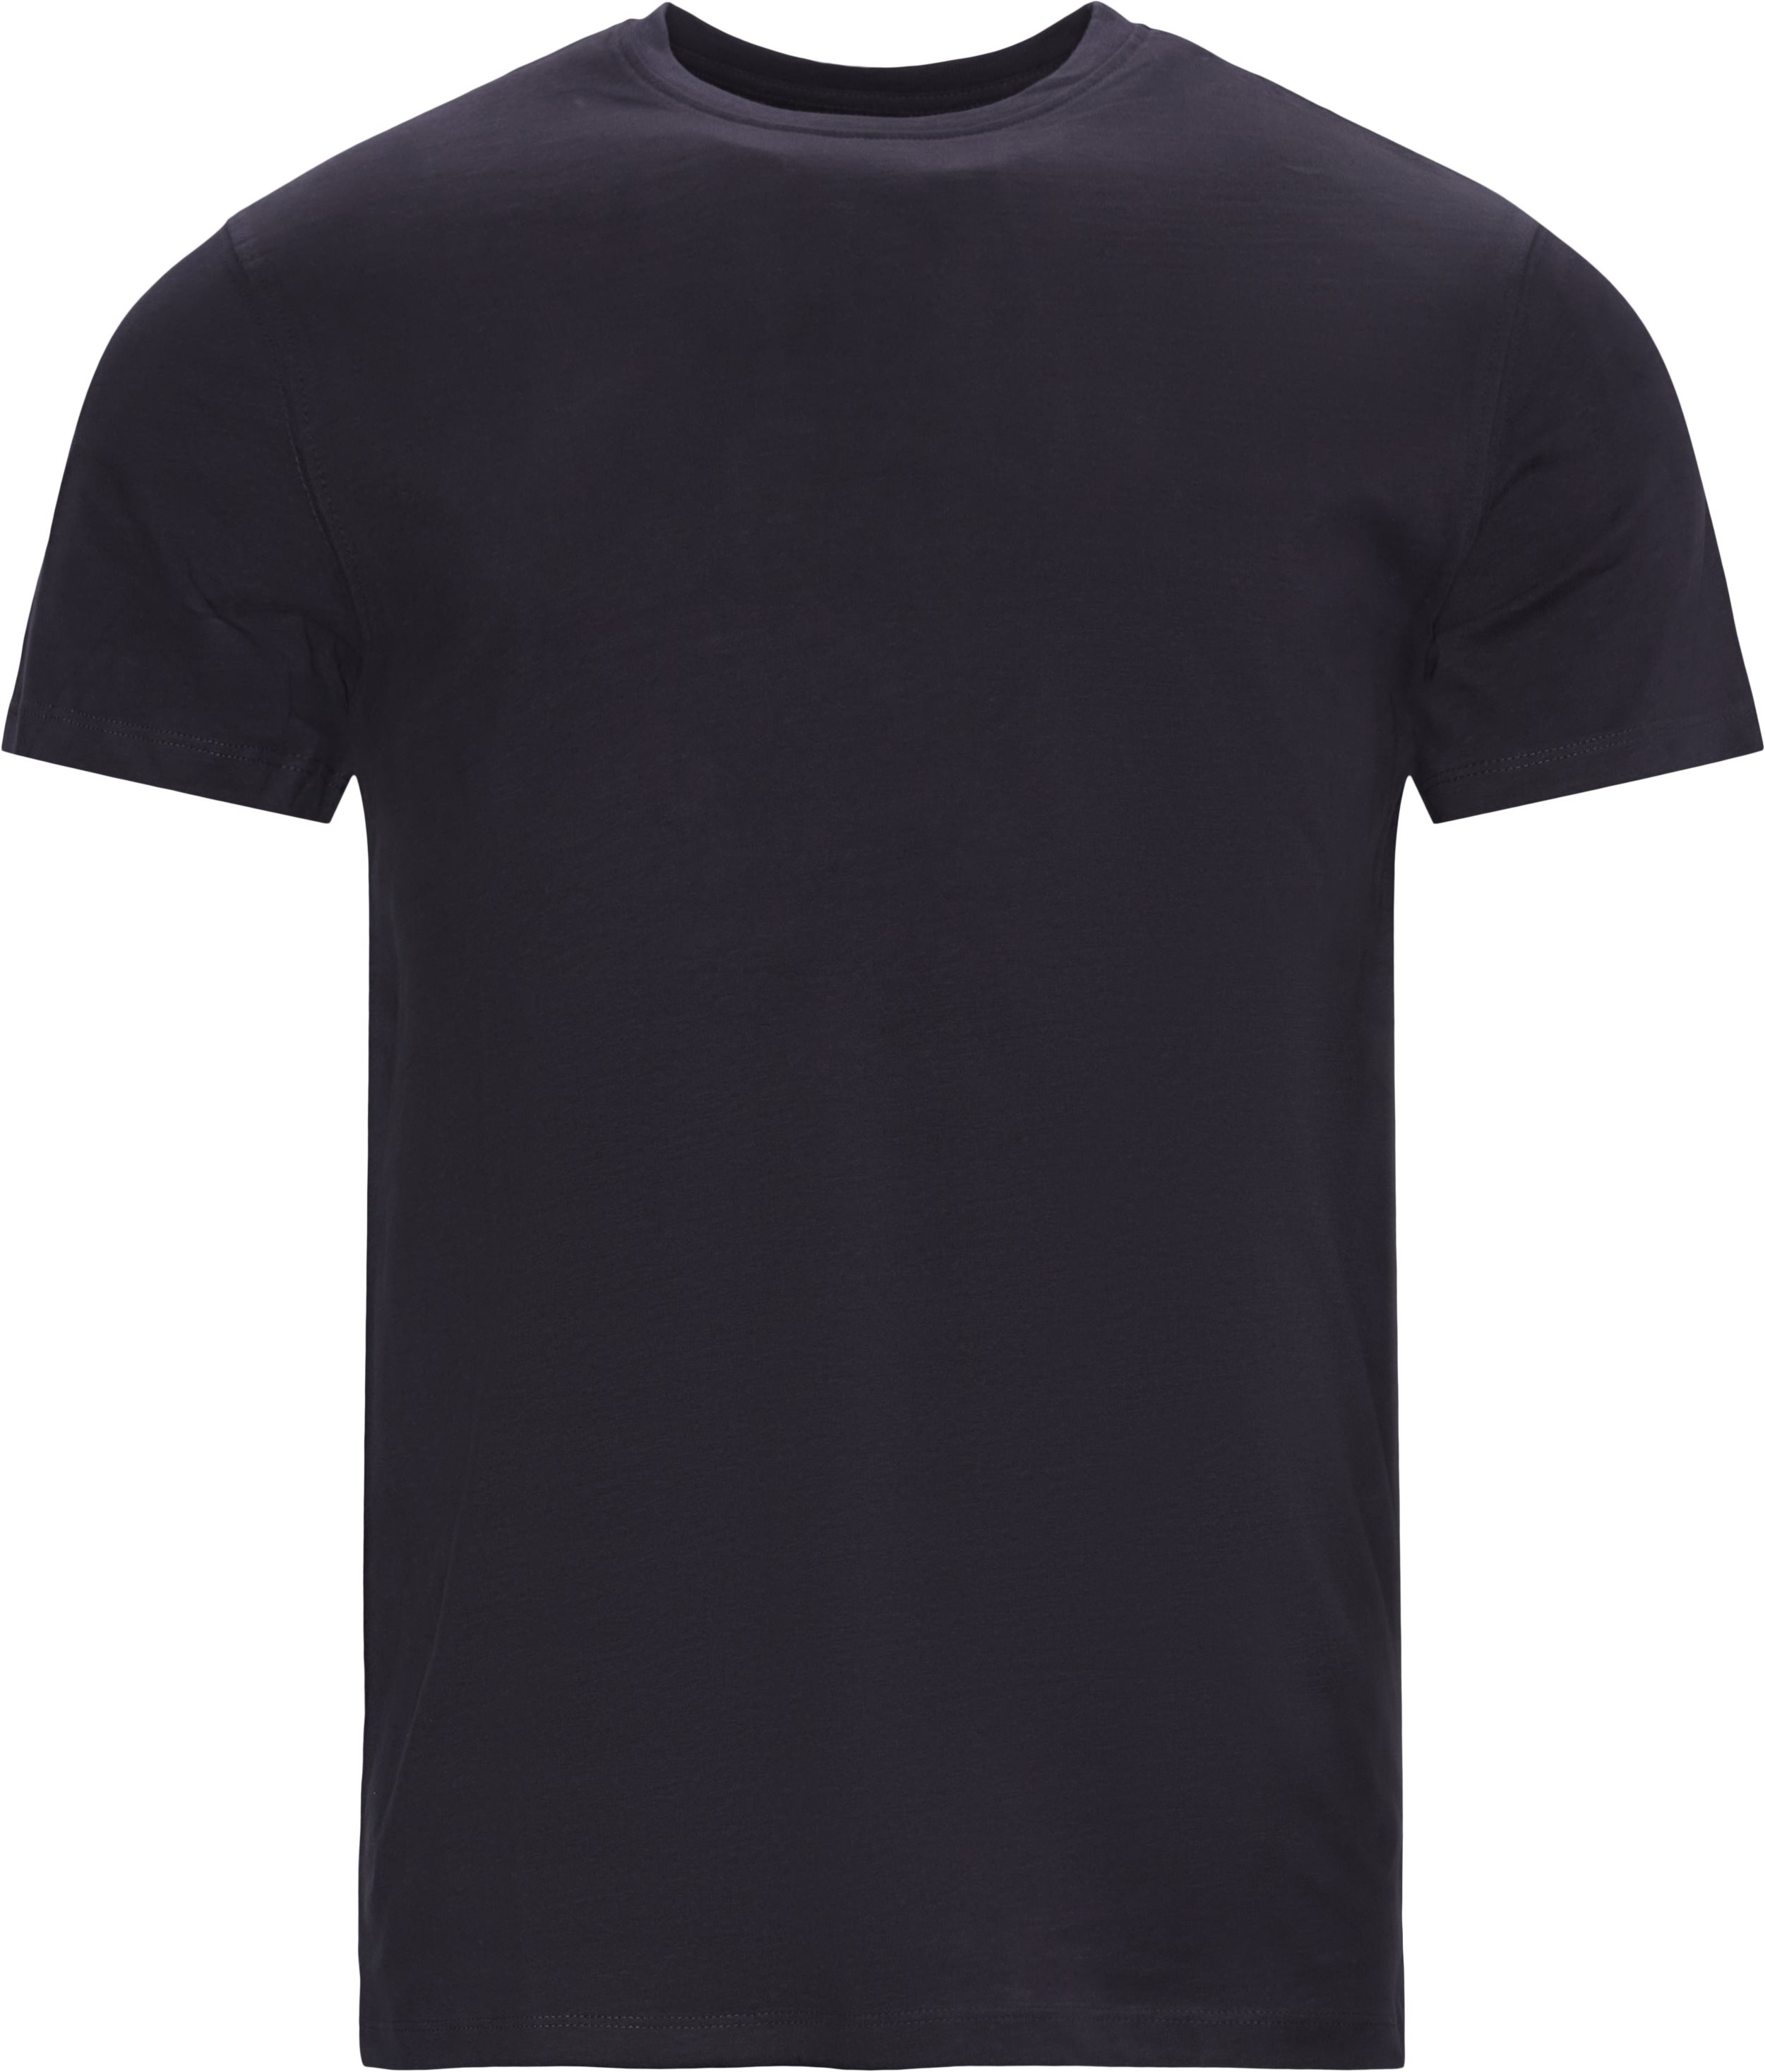 Brandon Crew Neck Tee - T-shirts - Regular - Blå